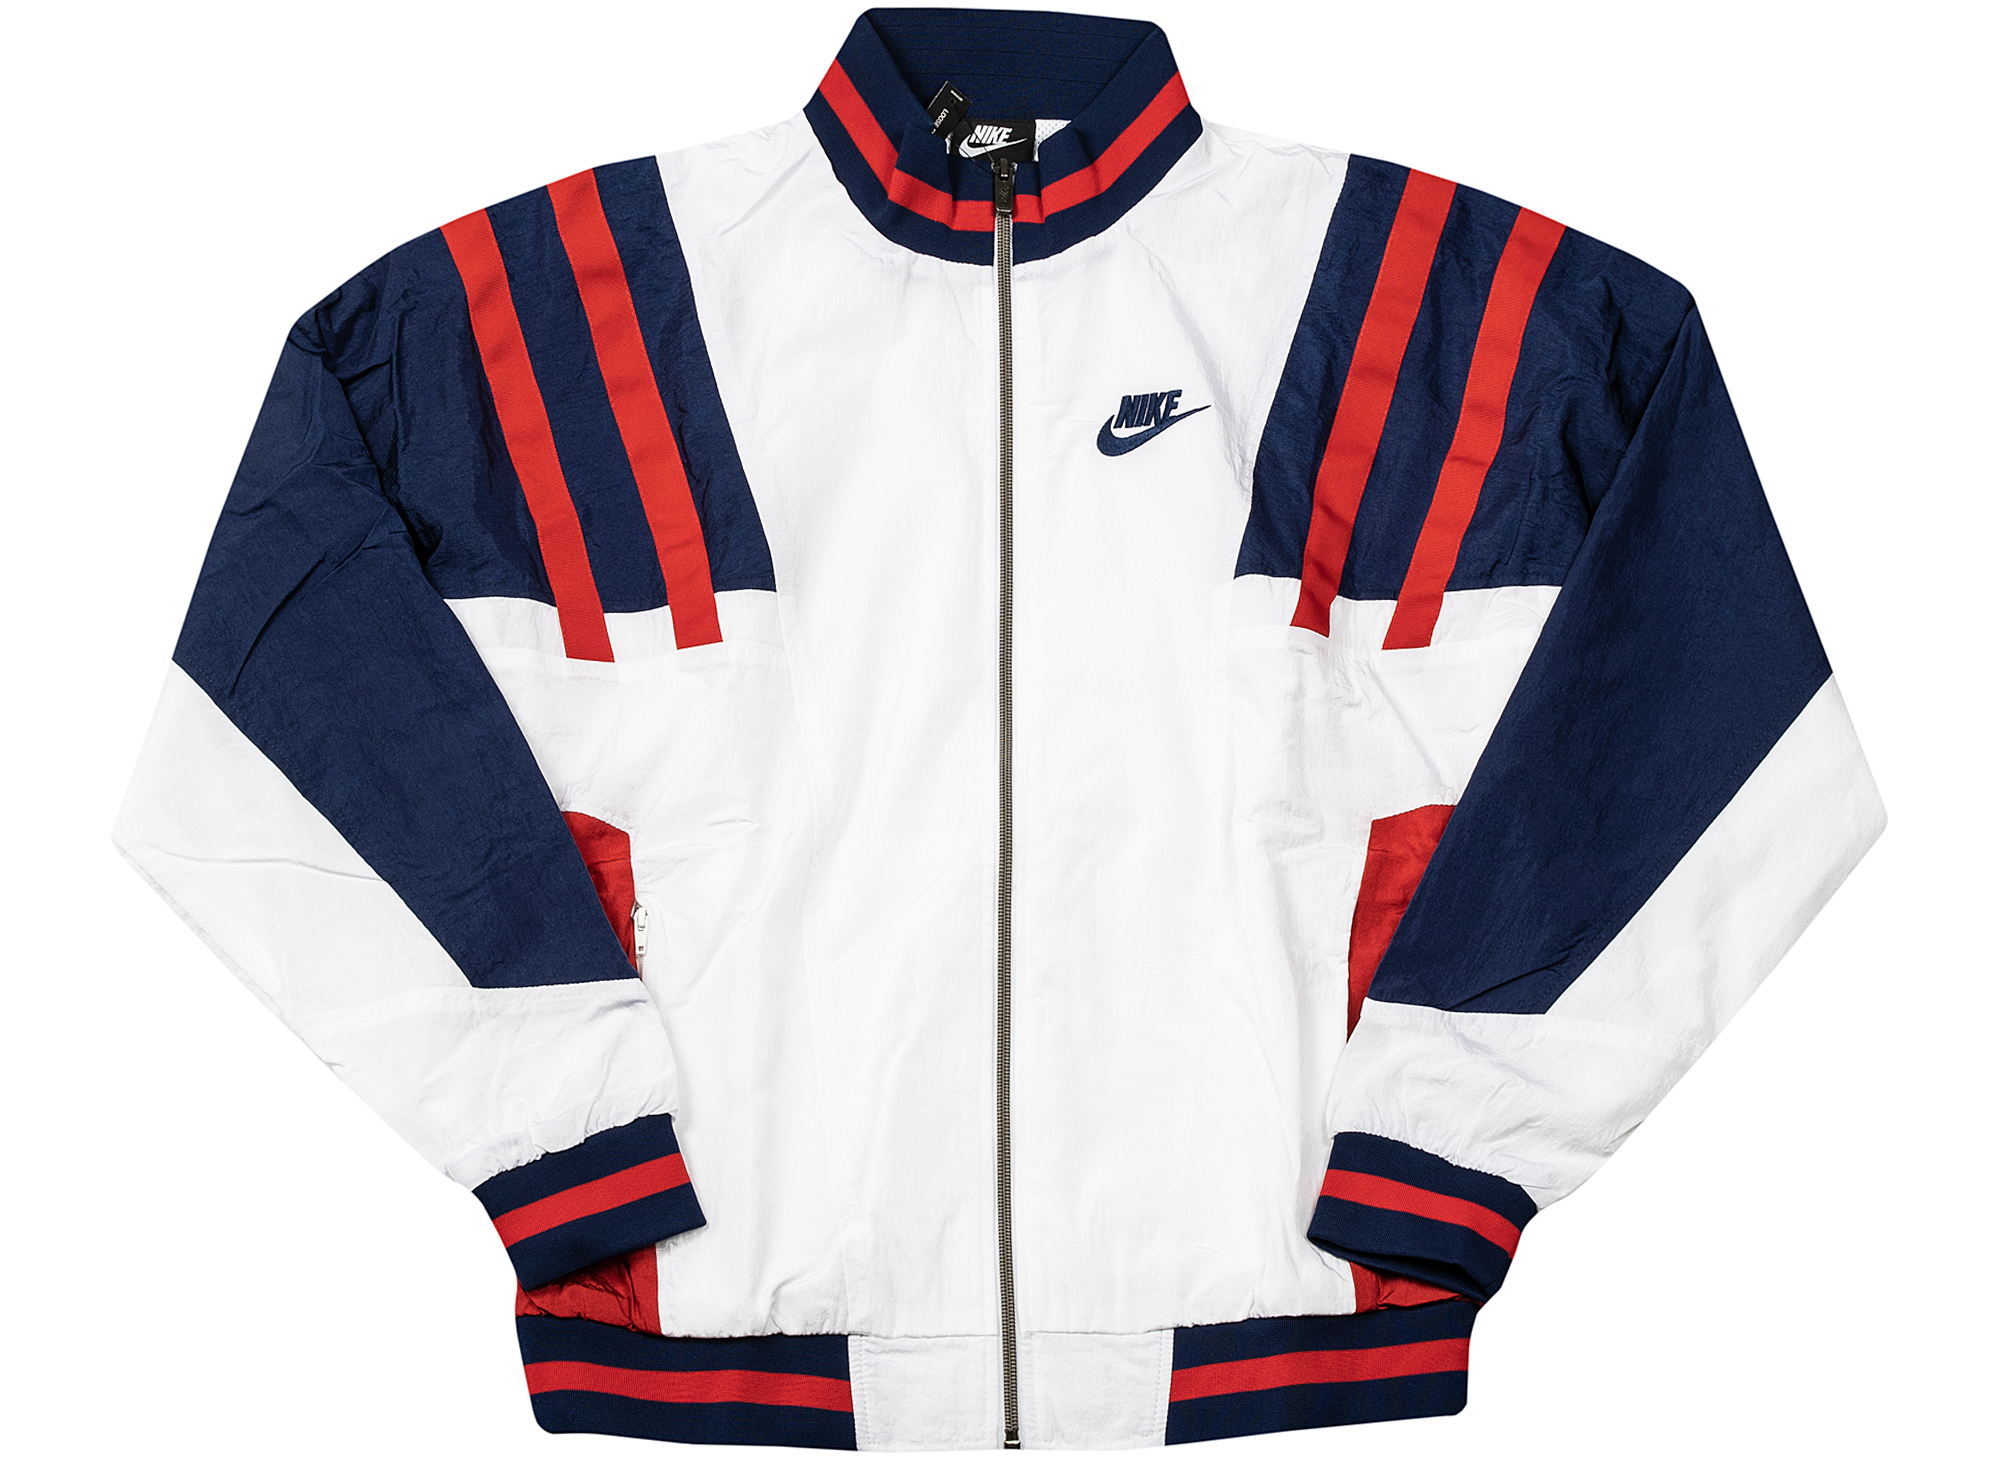 Nike Sportswear Zip-Up Jacket